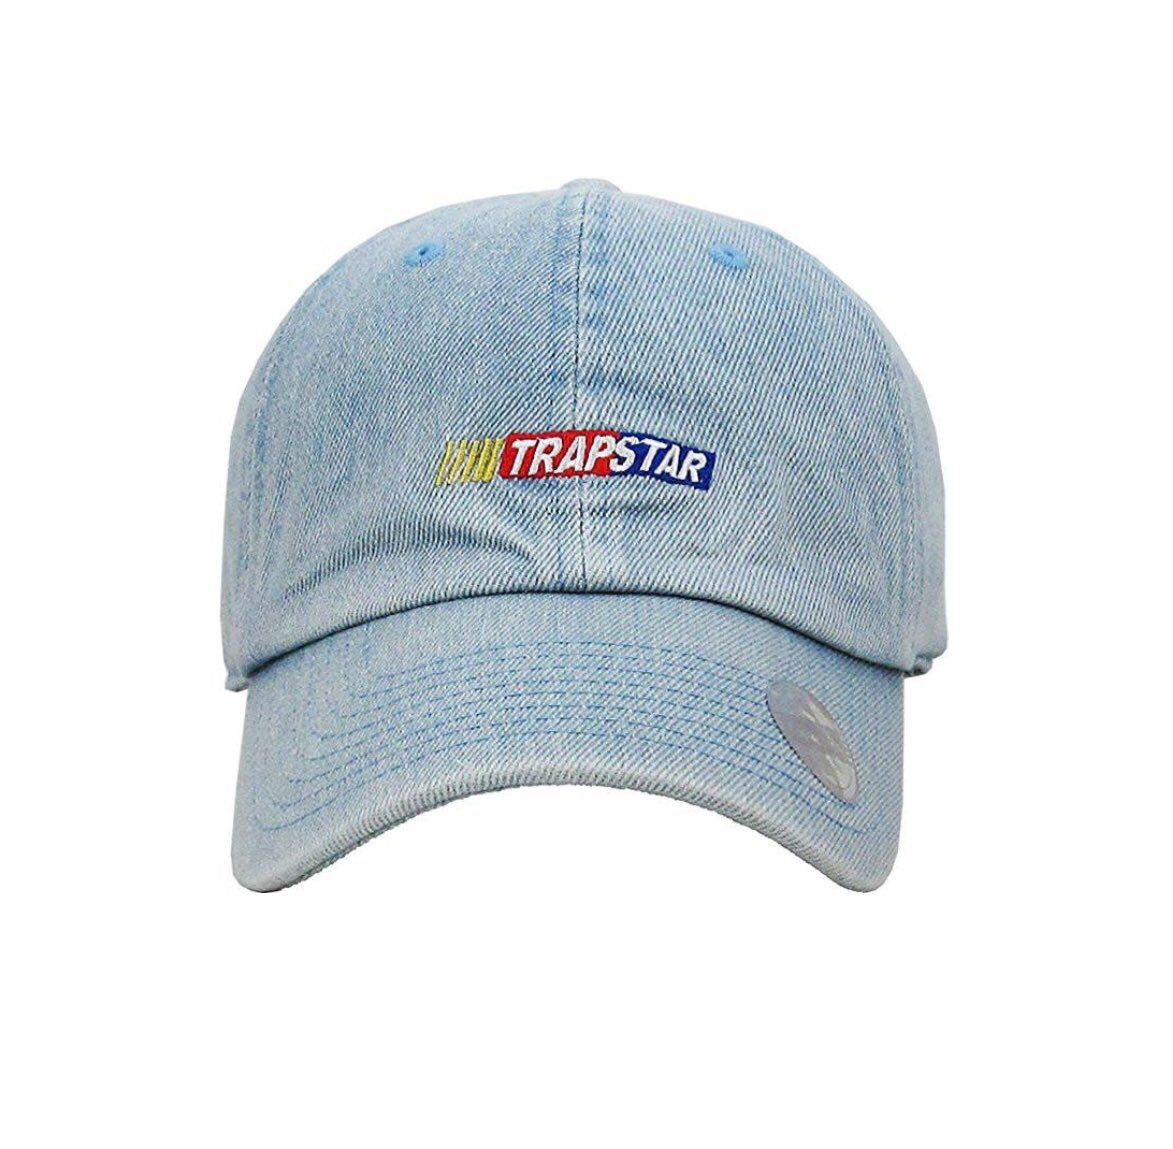 Trapstar Dad Hat ��  Shop: https://t.co/SFb2k5tjxv  Use Code 'Cap1' for 10% off + Free Shipping �� https://t.co/cS8C0Oy38i